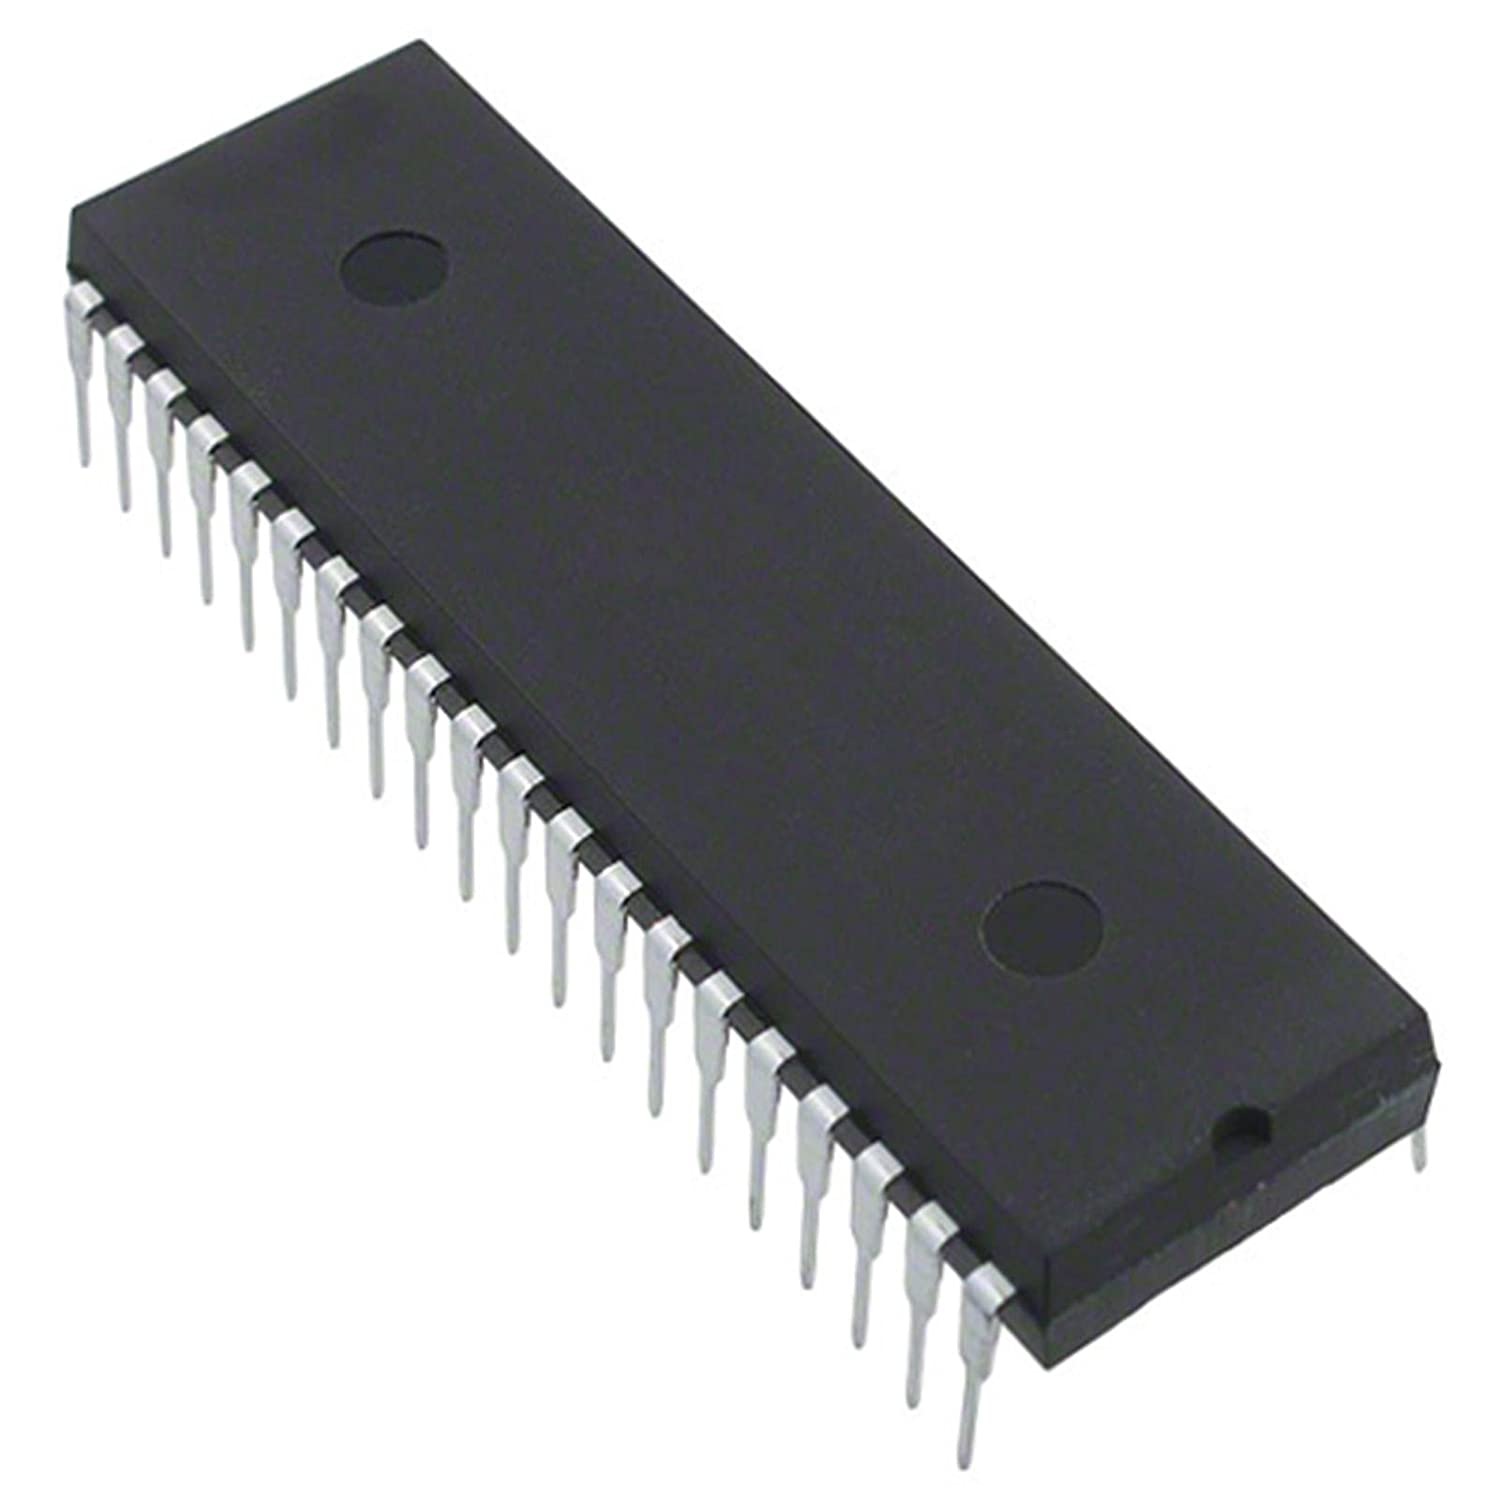 ATMEGA32-16PU Microcontroller with 32KBytes In-System Programmable Flash IC ATMEL